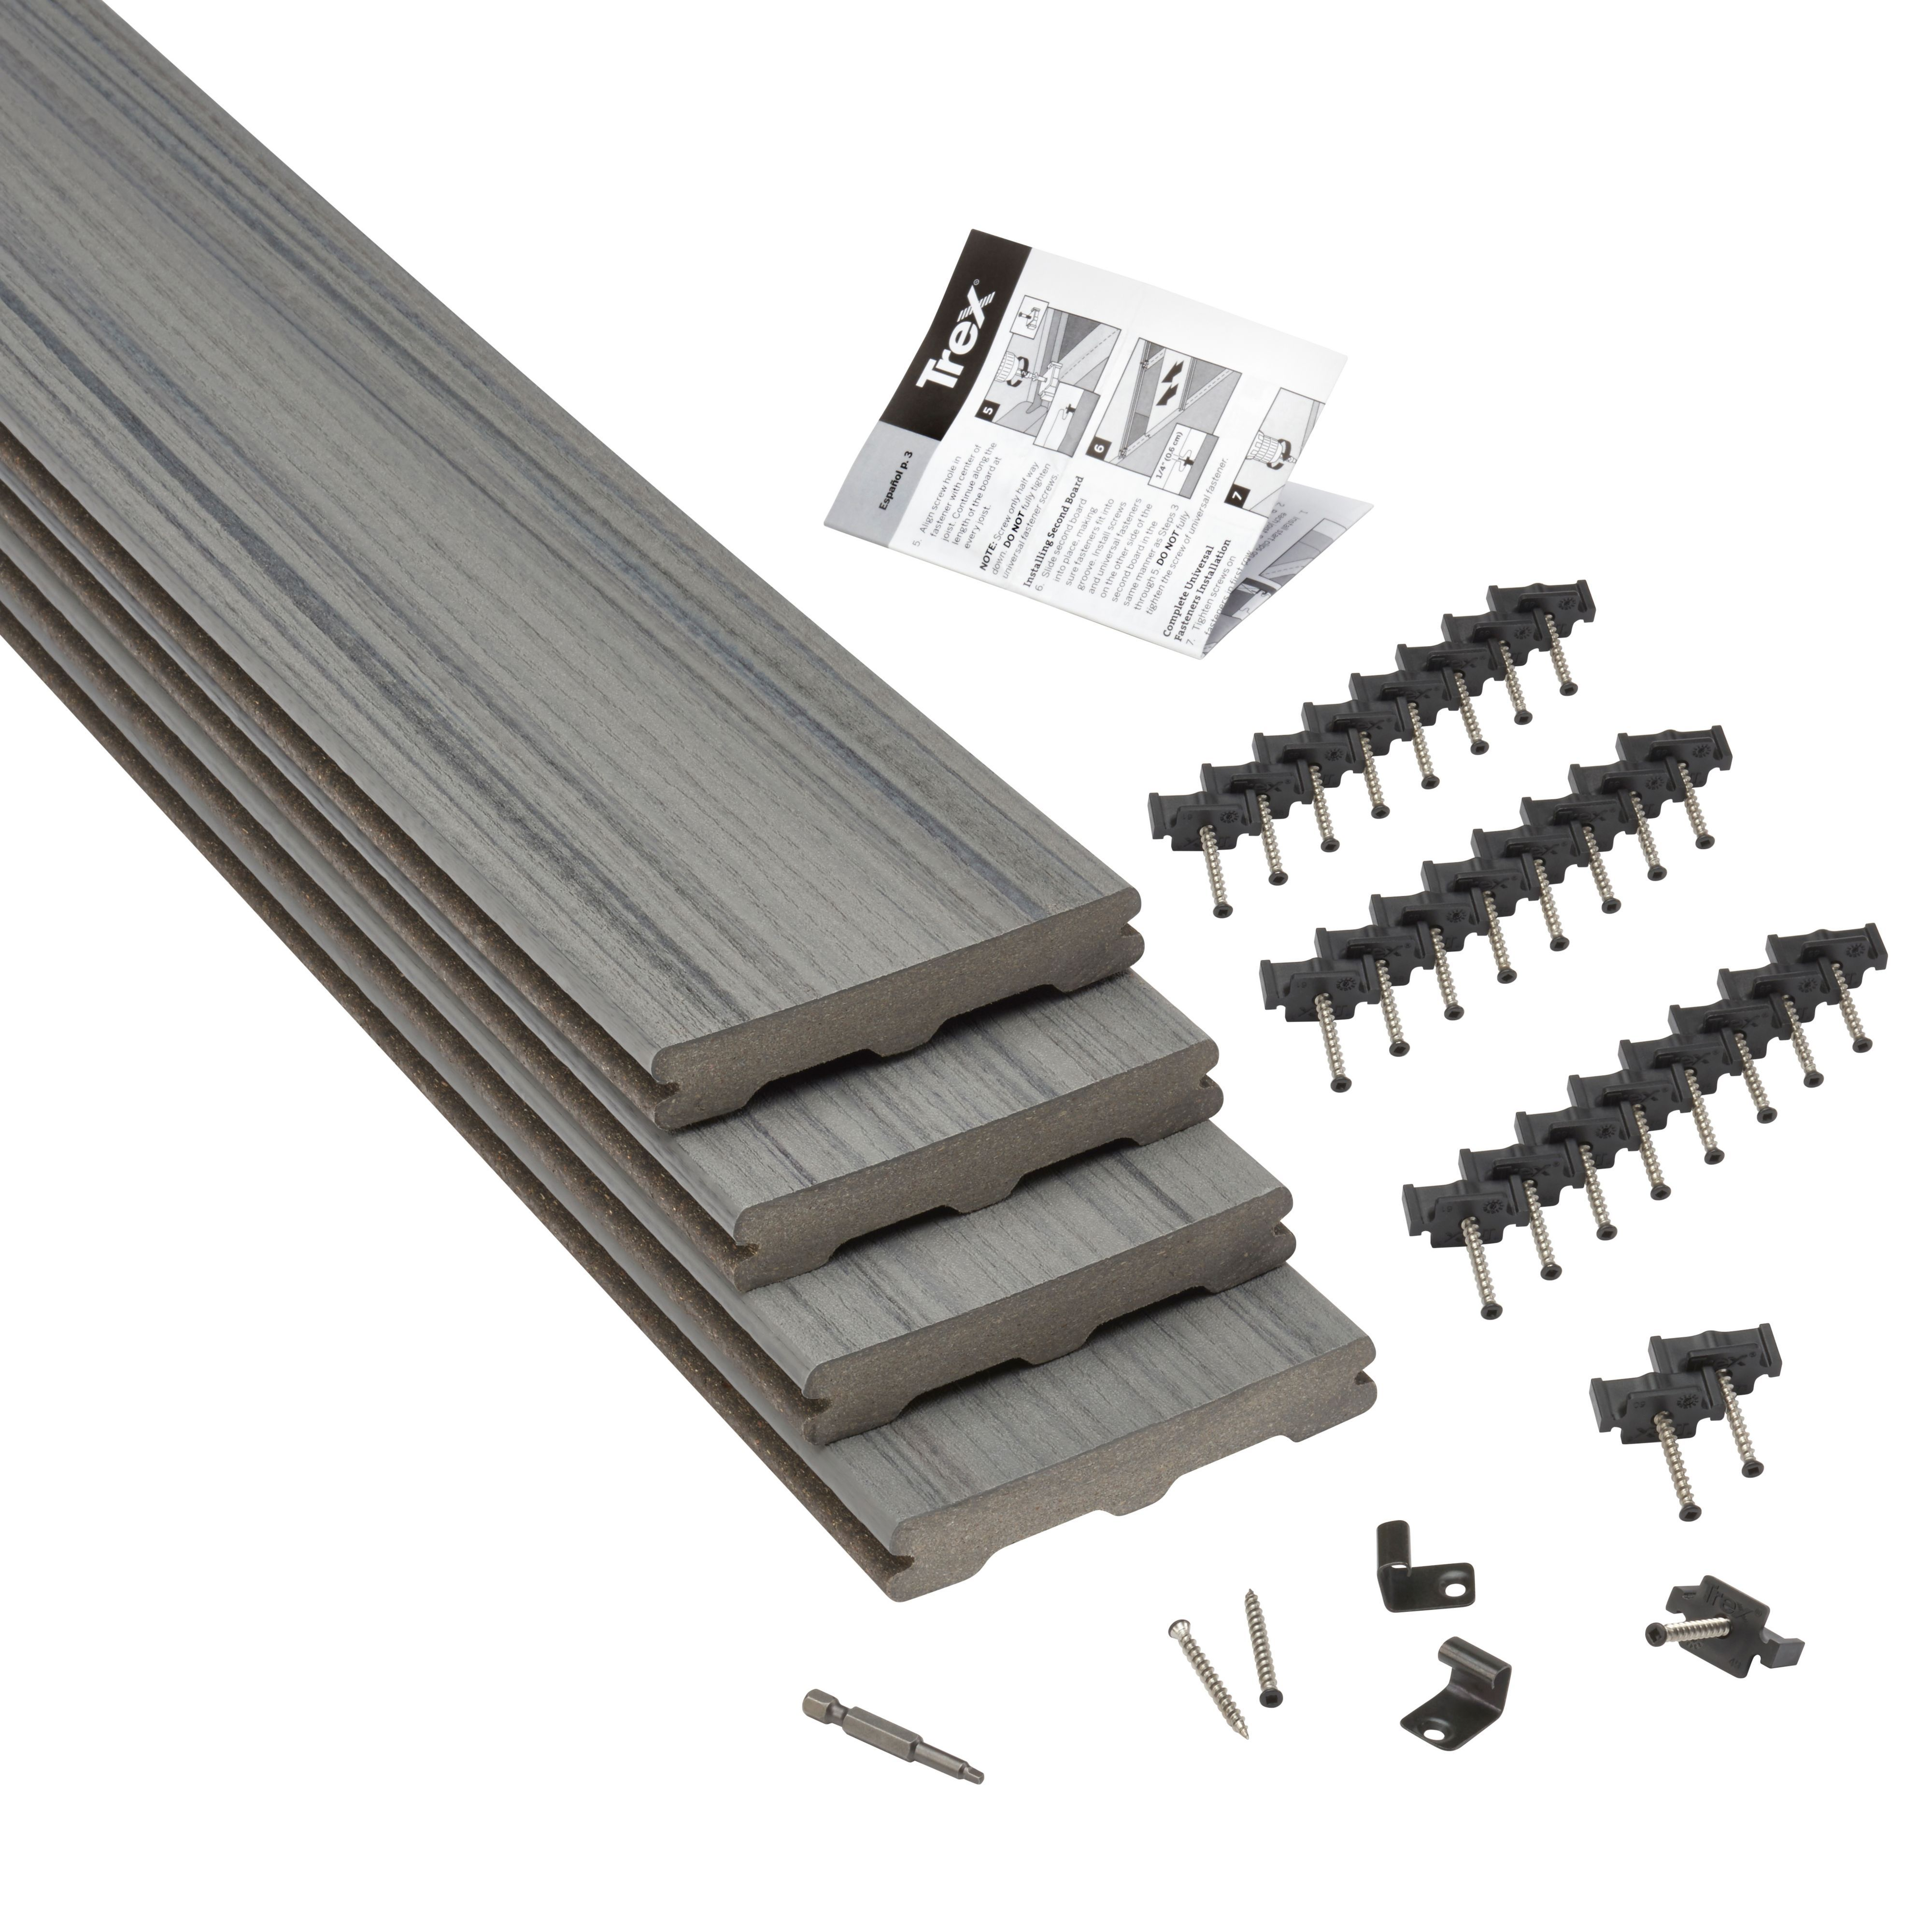 Trex Chateau Grey Composite Deck Board W 140mm L 2400mm T 24mm Pack Of 4 Departments Diy At B Q Composite Decking Composite Decking Boards Deck Boards